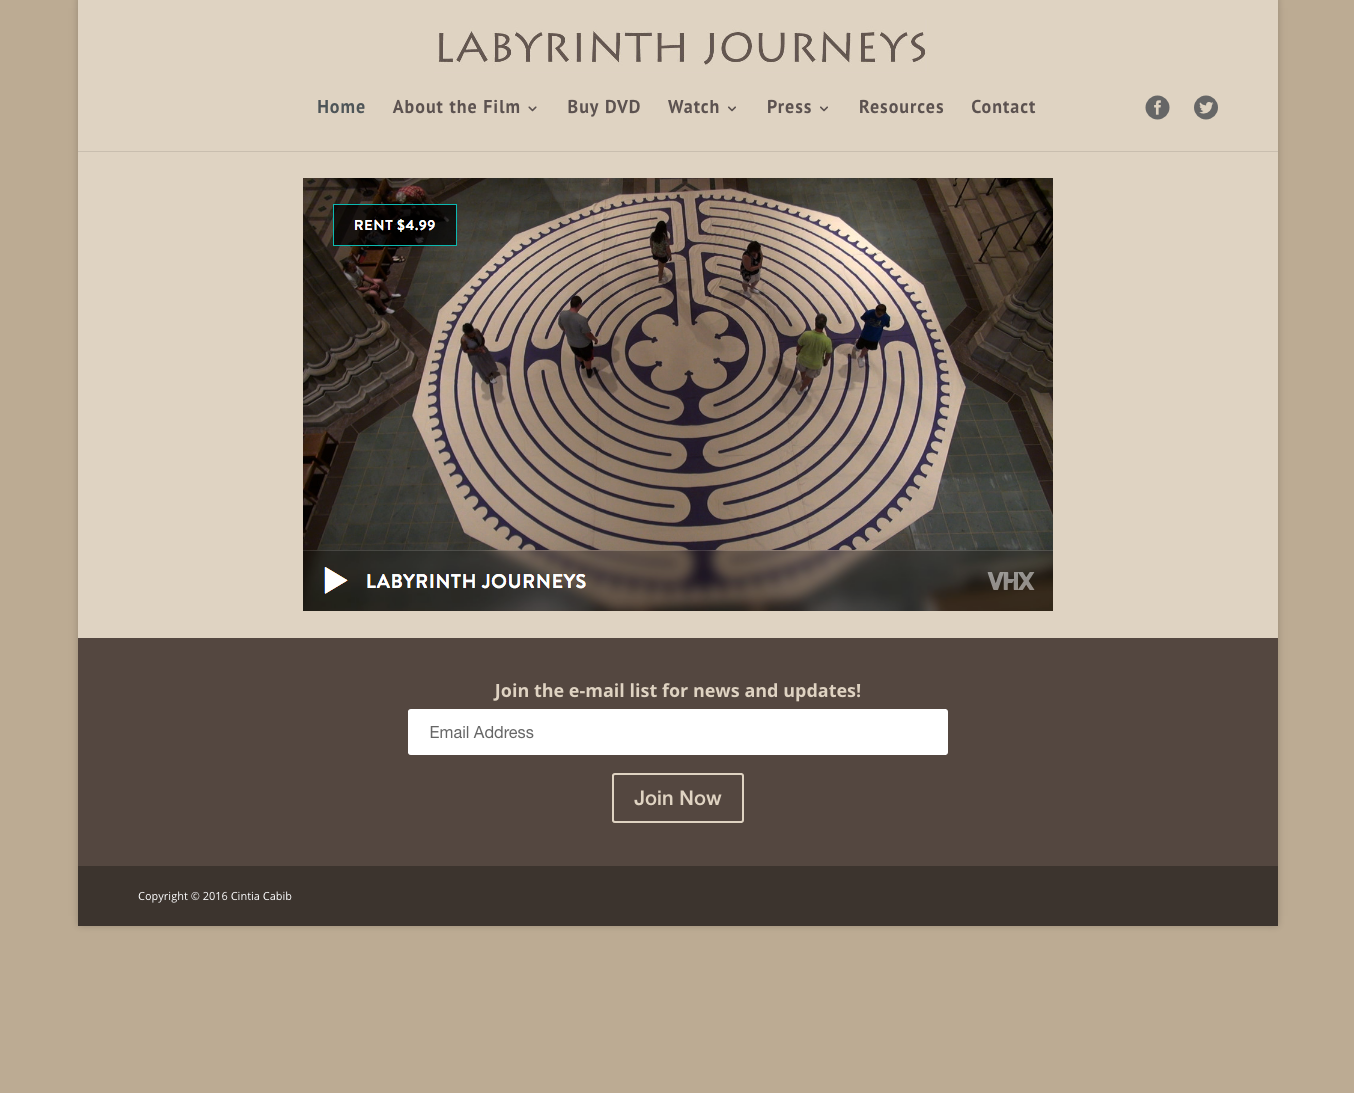 Labyrinth Journeys